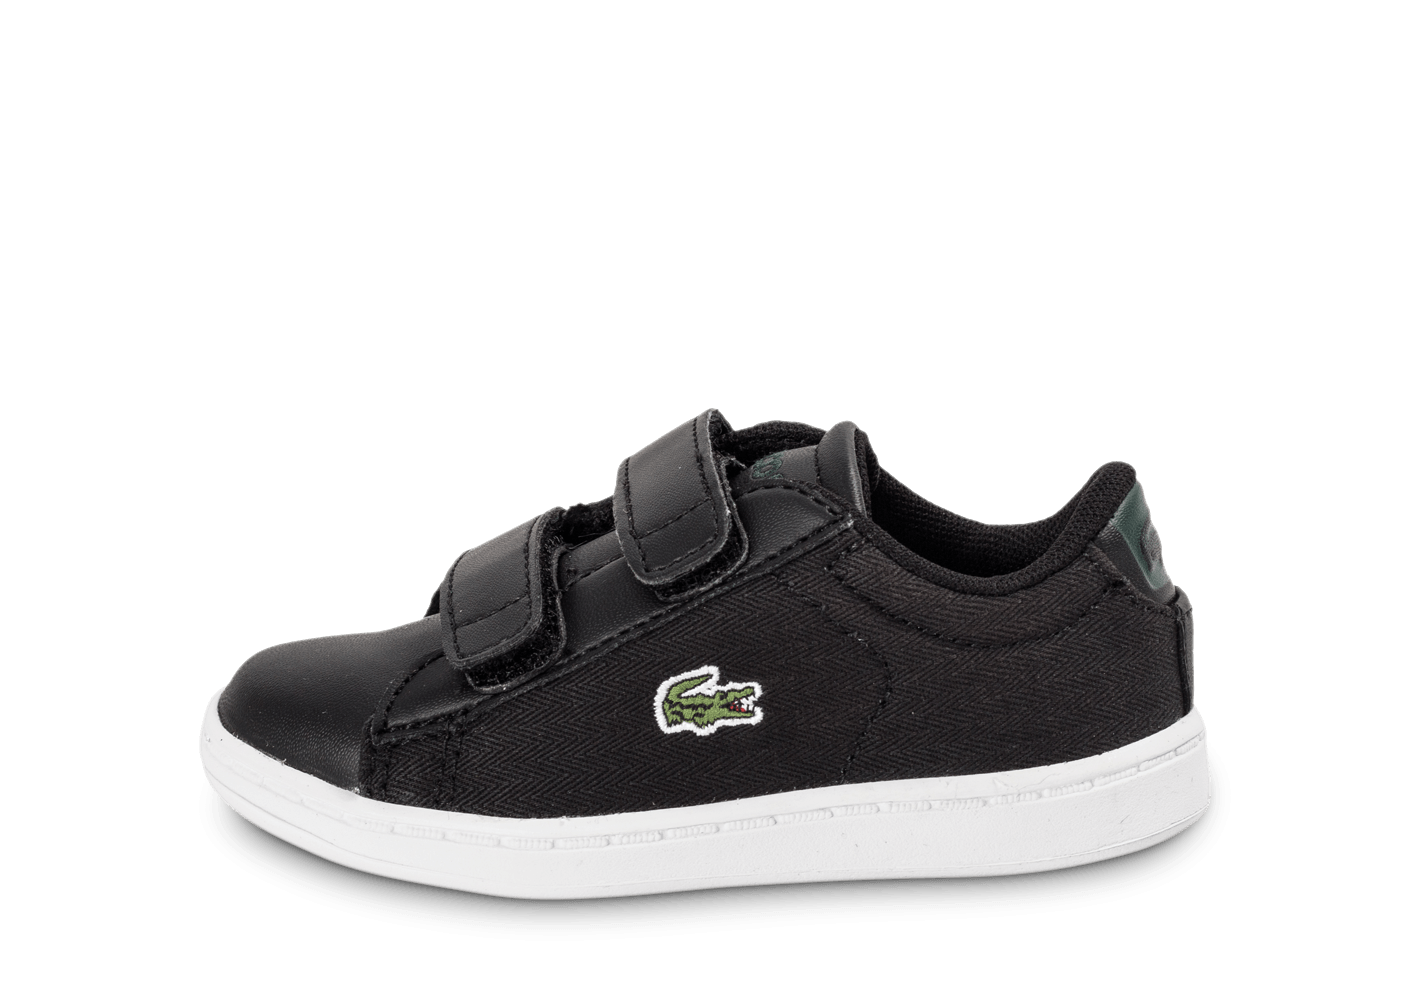 96d73a50bf chaussure lacoste bebe,chaussures lacoste carnaby evo bebe noire vue ...